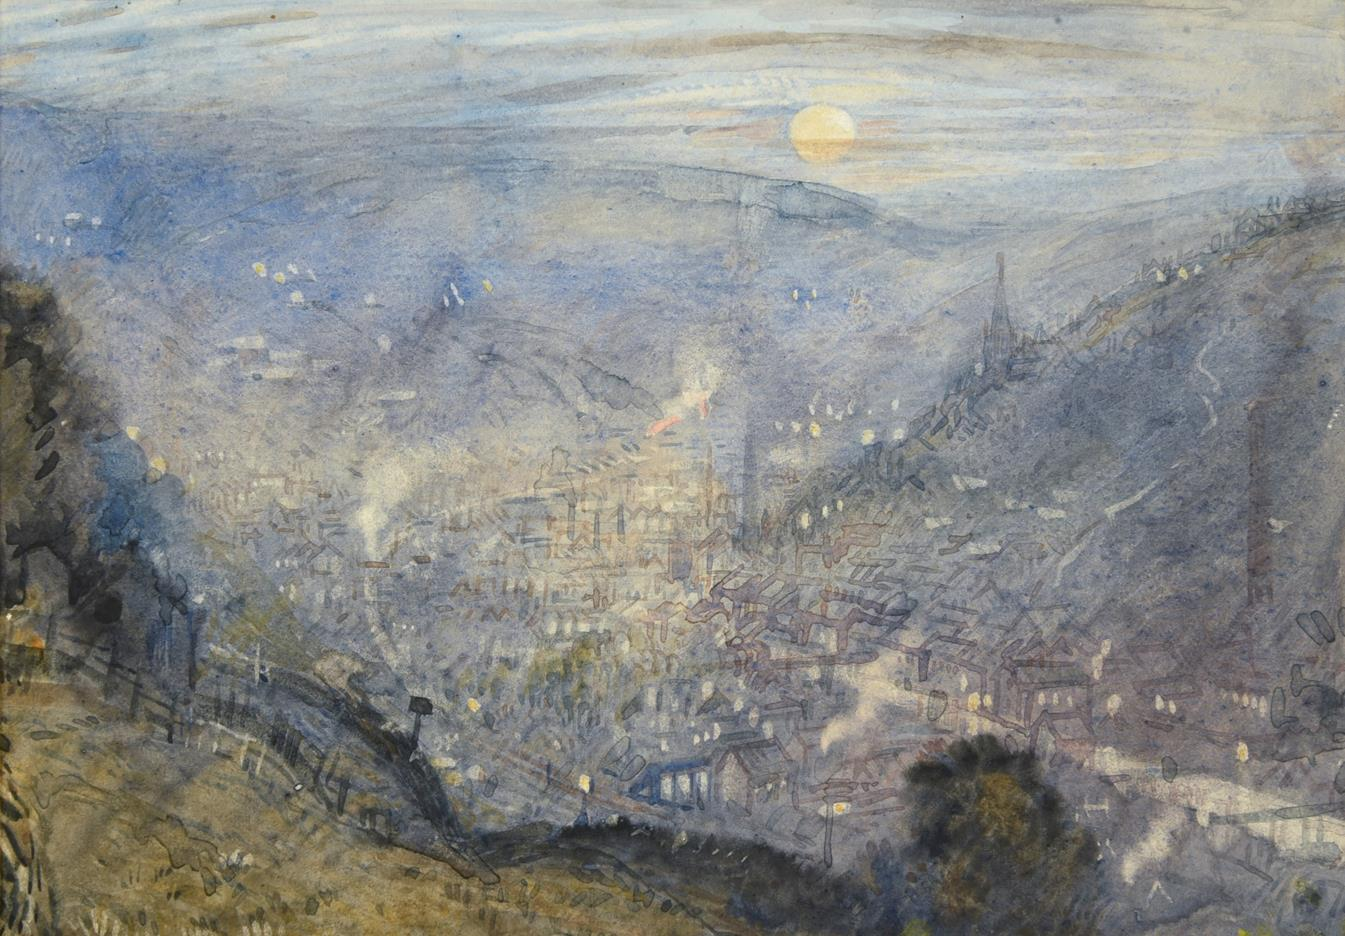 Attributed to Frederick (Fred) Cecil Jones RBA (1891-1966) ''Moonrise Todmorden'' Inscribed and